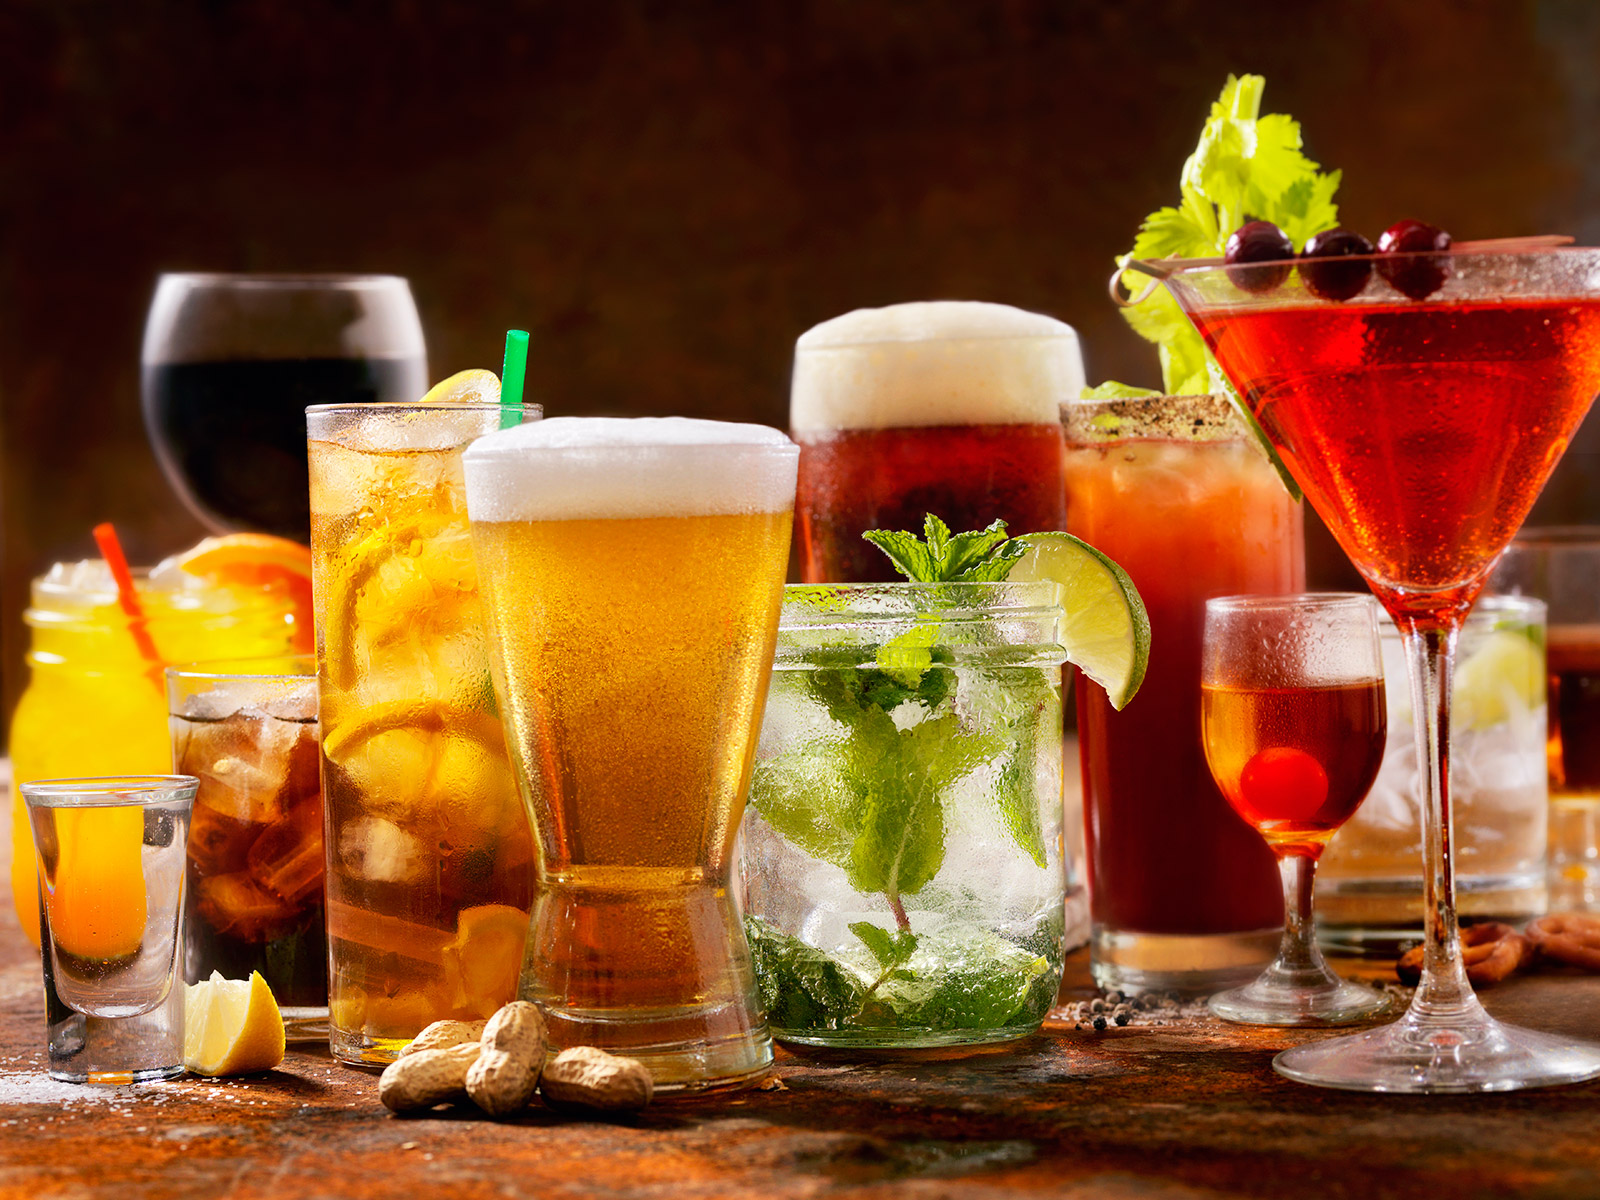 Beer vs. Wine vs. Liquor: The Most-Ordered Alcohol in Your ...